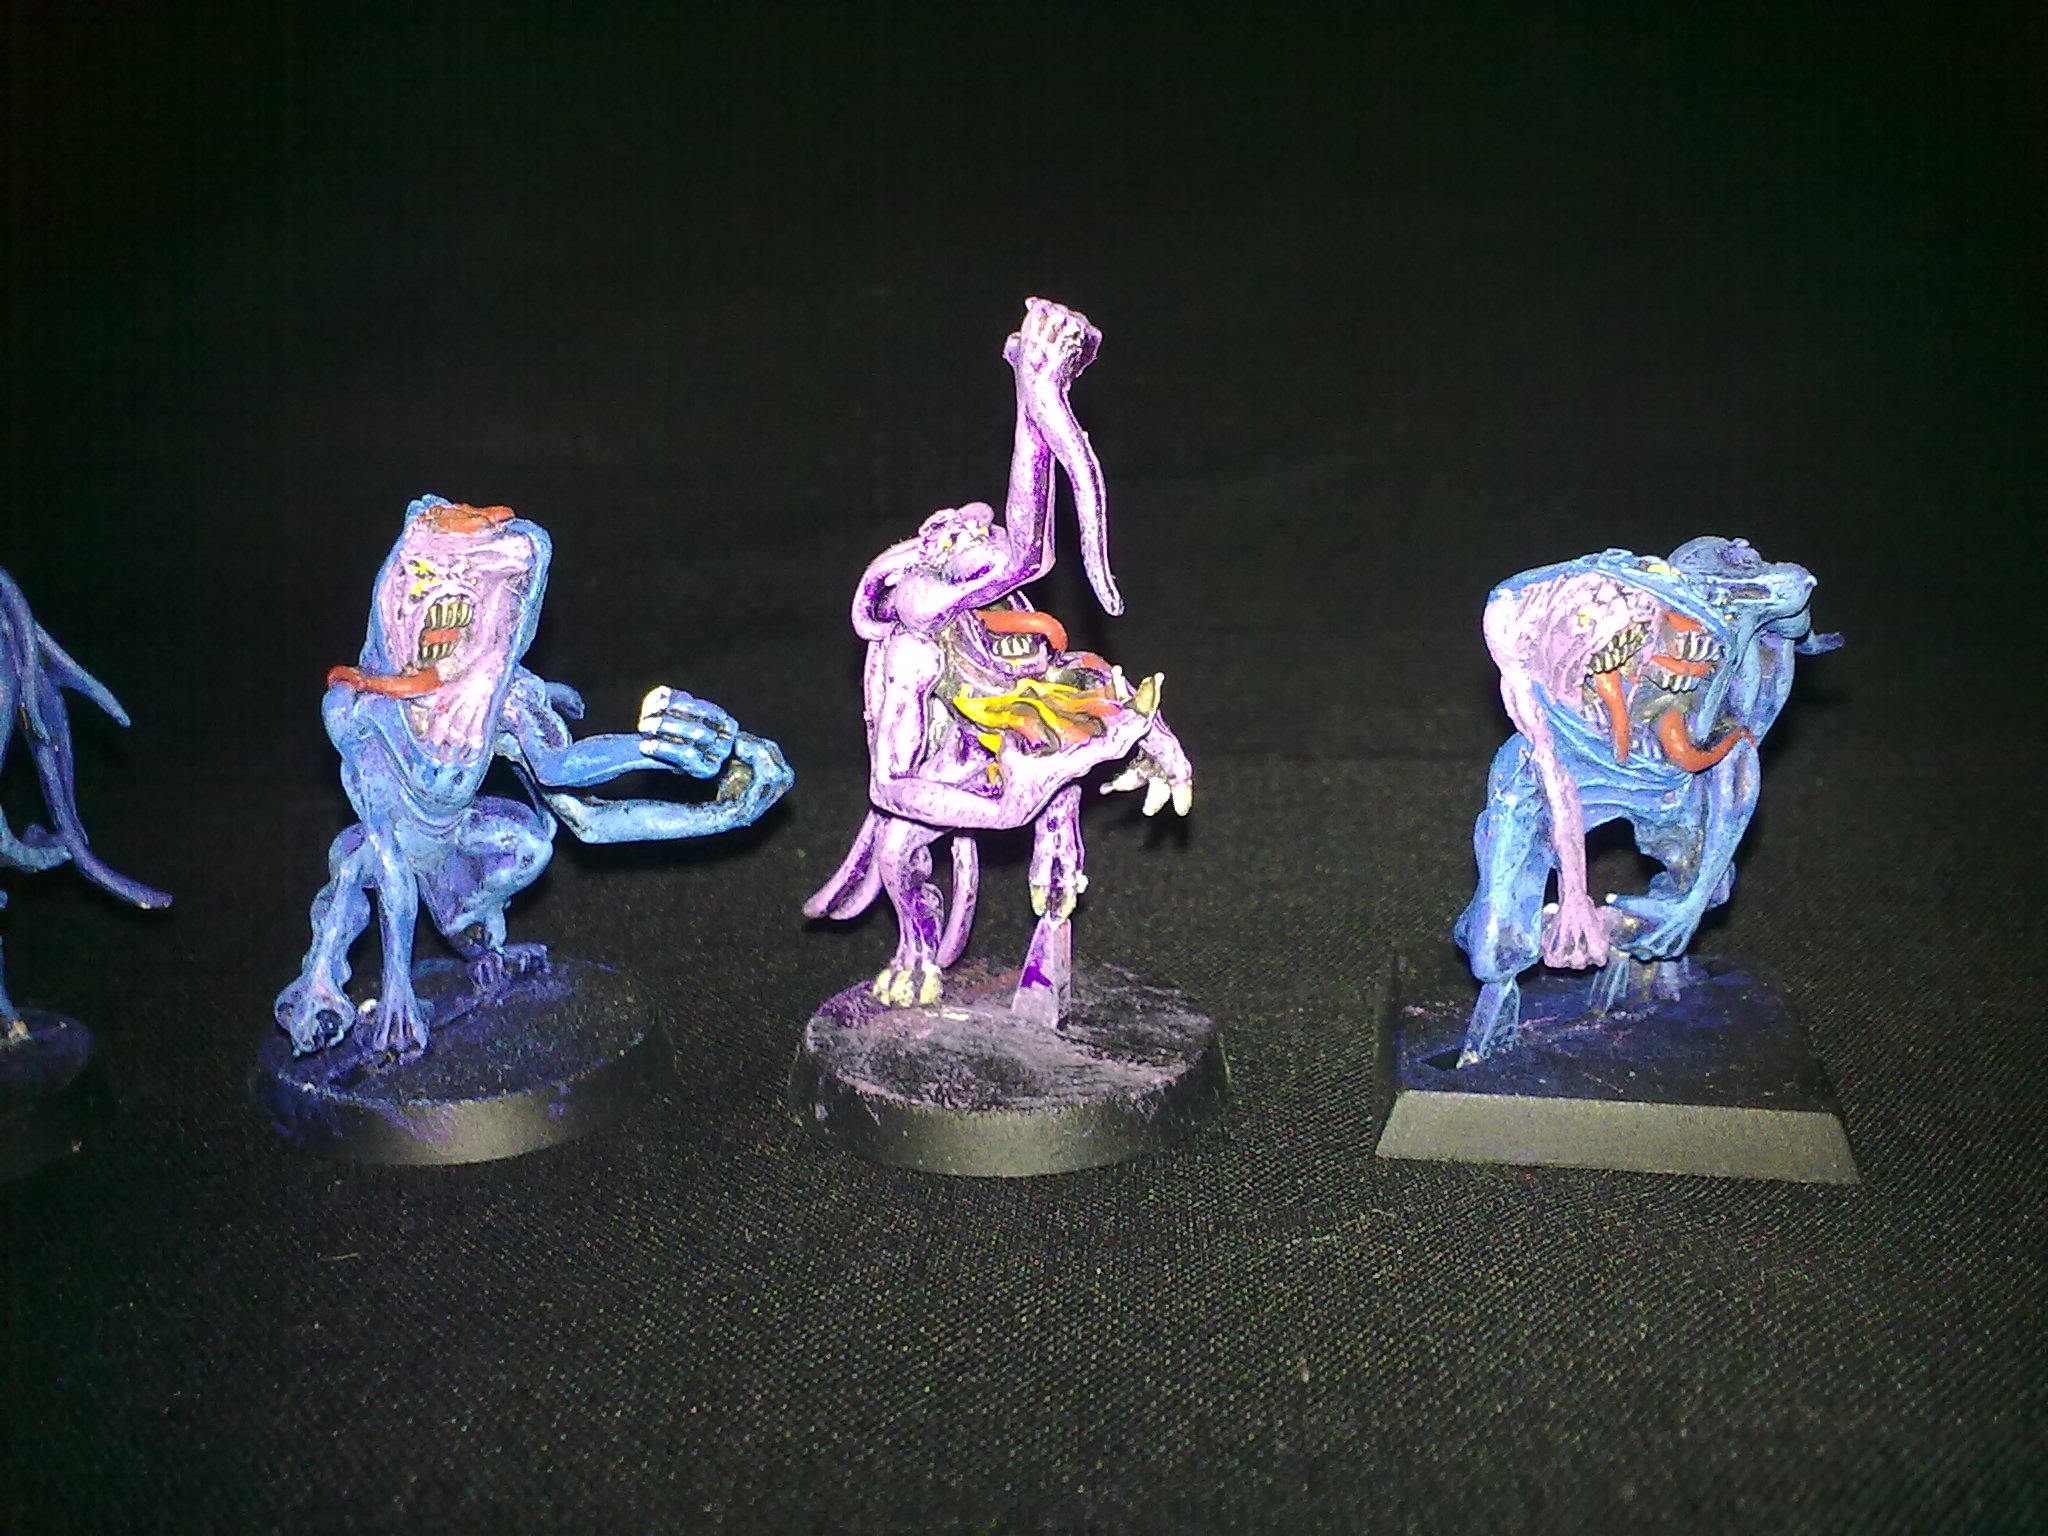 Pink and Blue Horrors, painted by Questing Knight